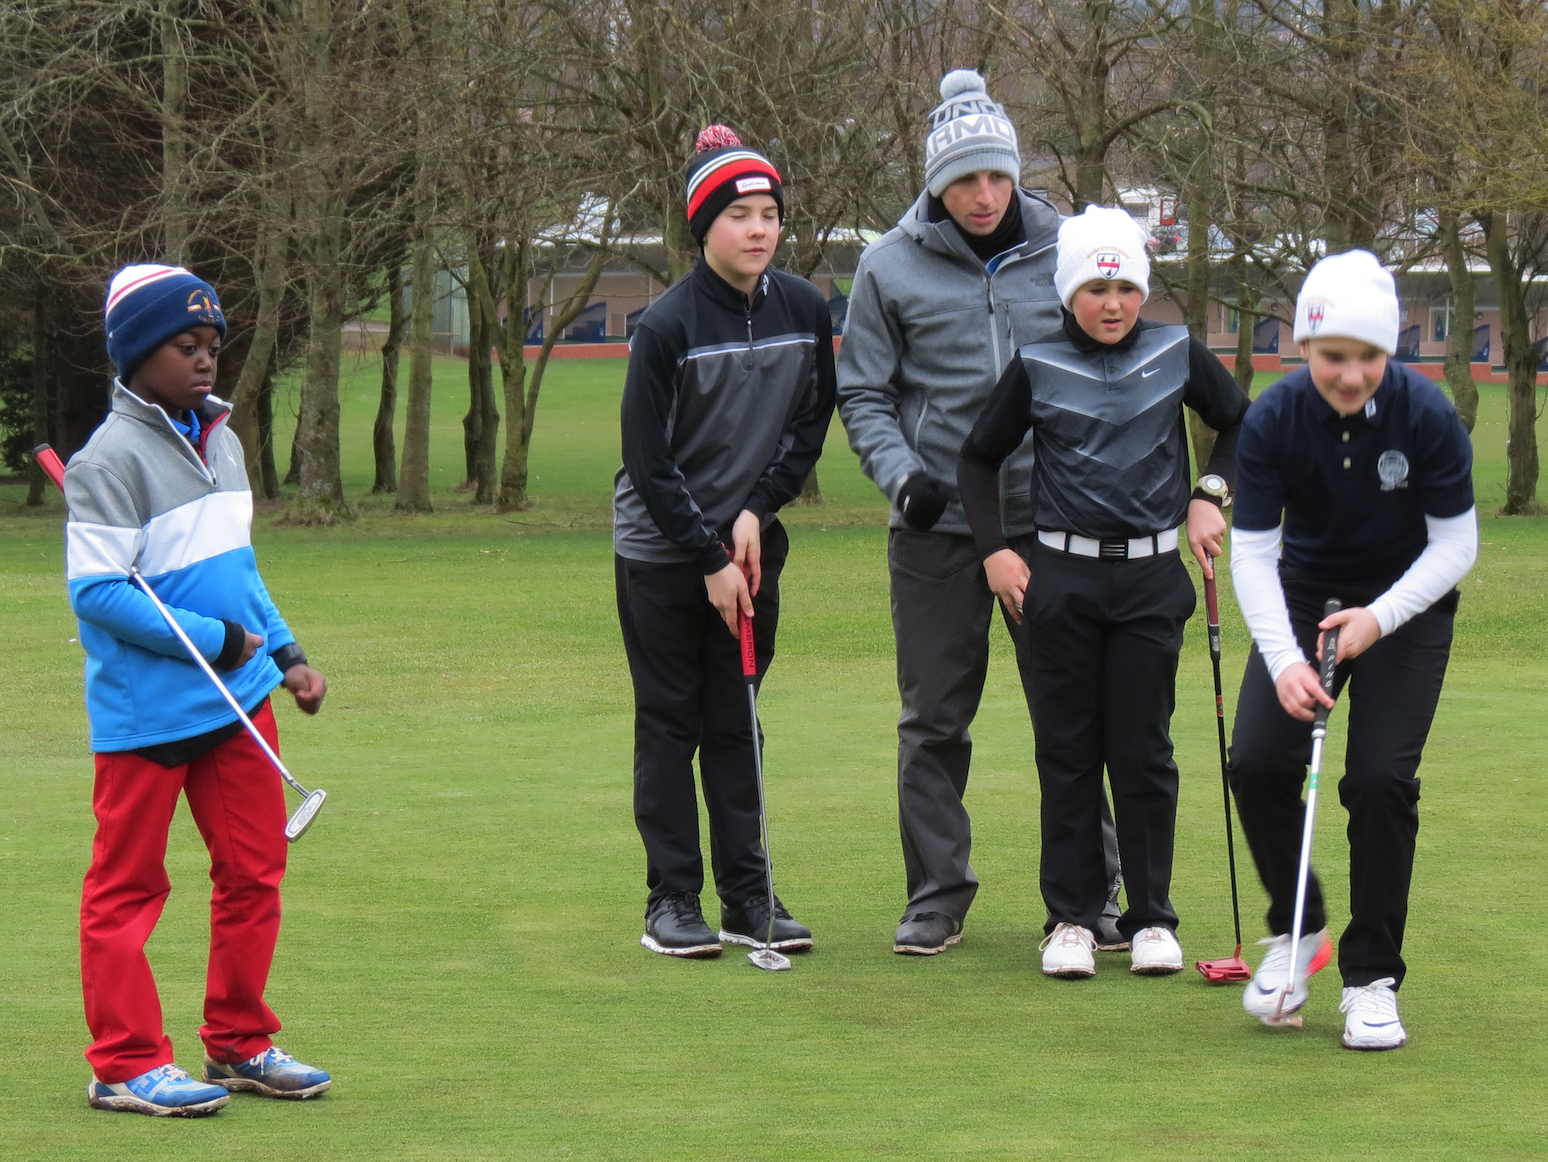 Copy of Worcestershire County Golf Putting session